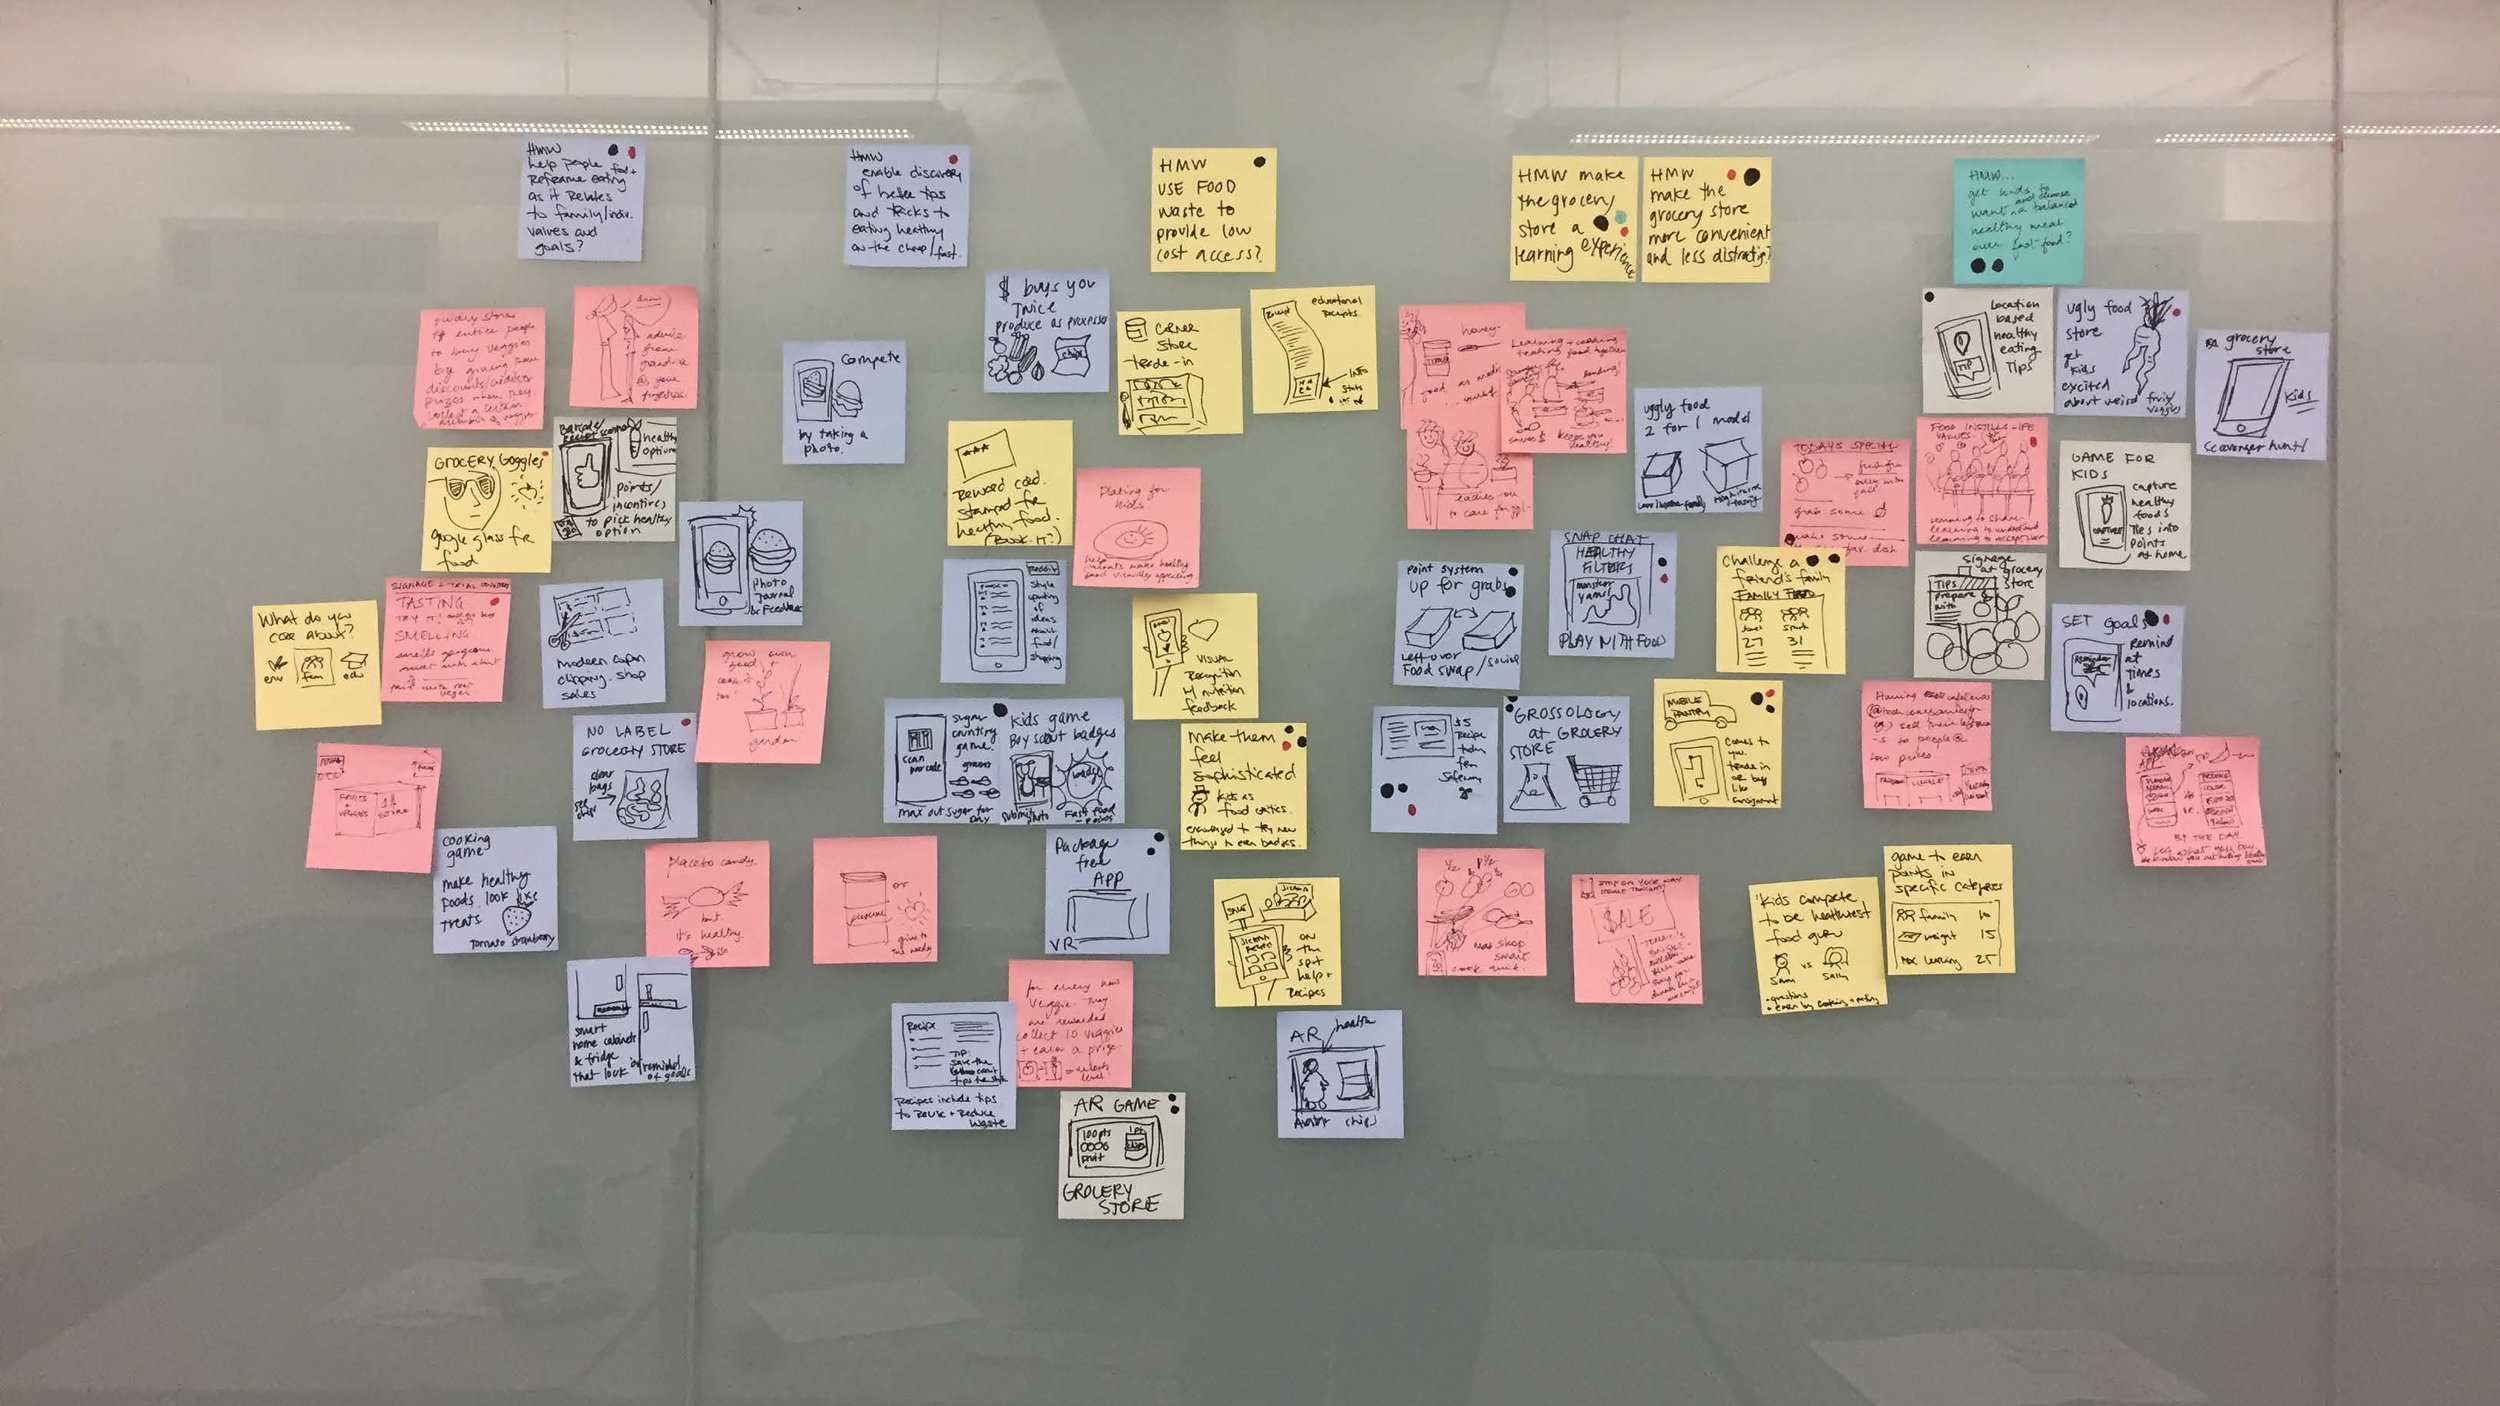 IDEATION:  Using How Might We statements and our personas, we ideated and brainstormed ideas and directions for this project, then each went with an idea we were passionate about. For me that was increasing access to fresh and healthy food and reducing food waste.